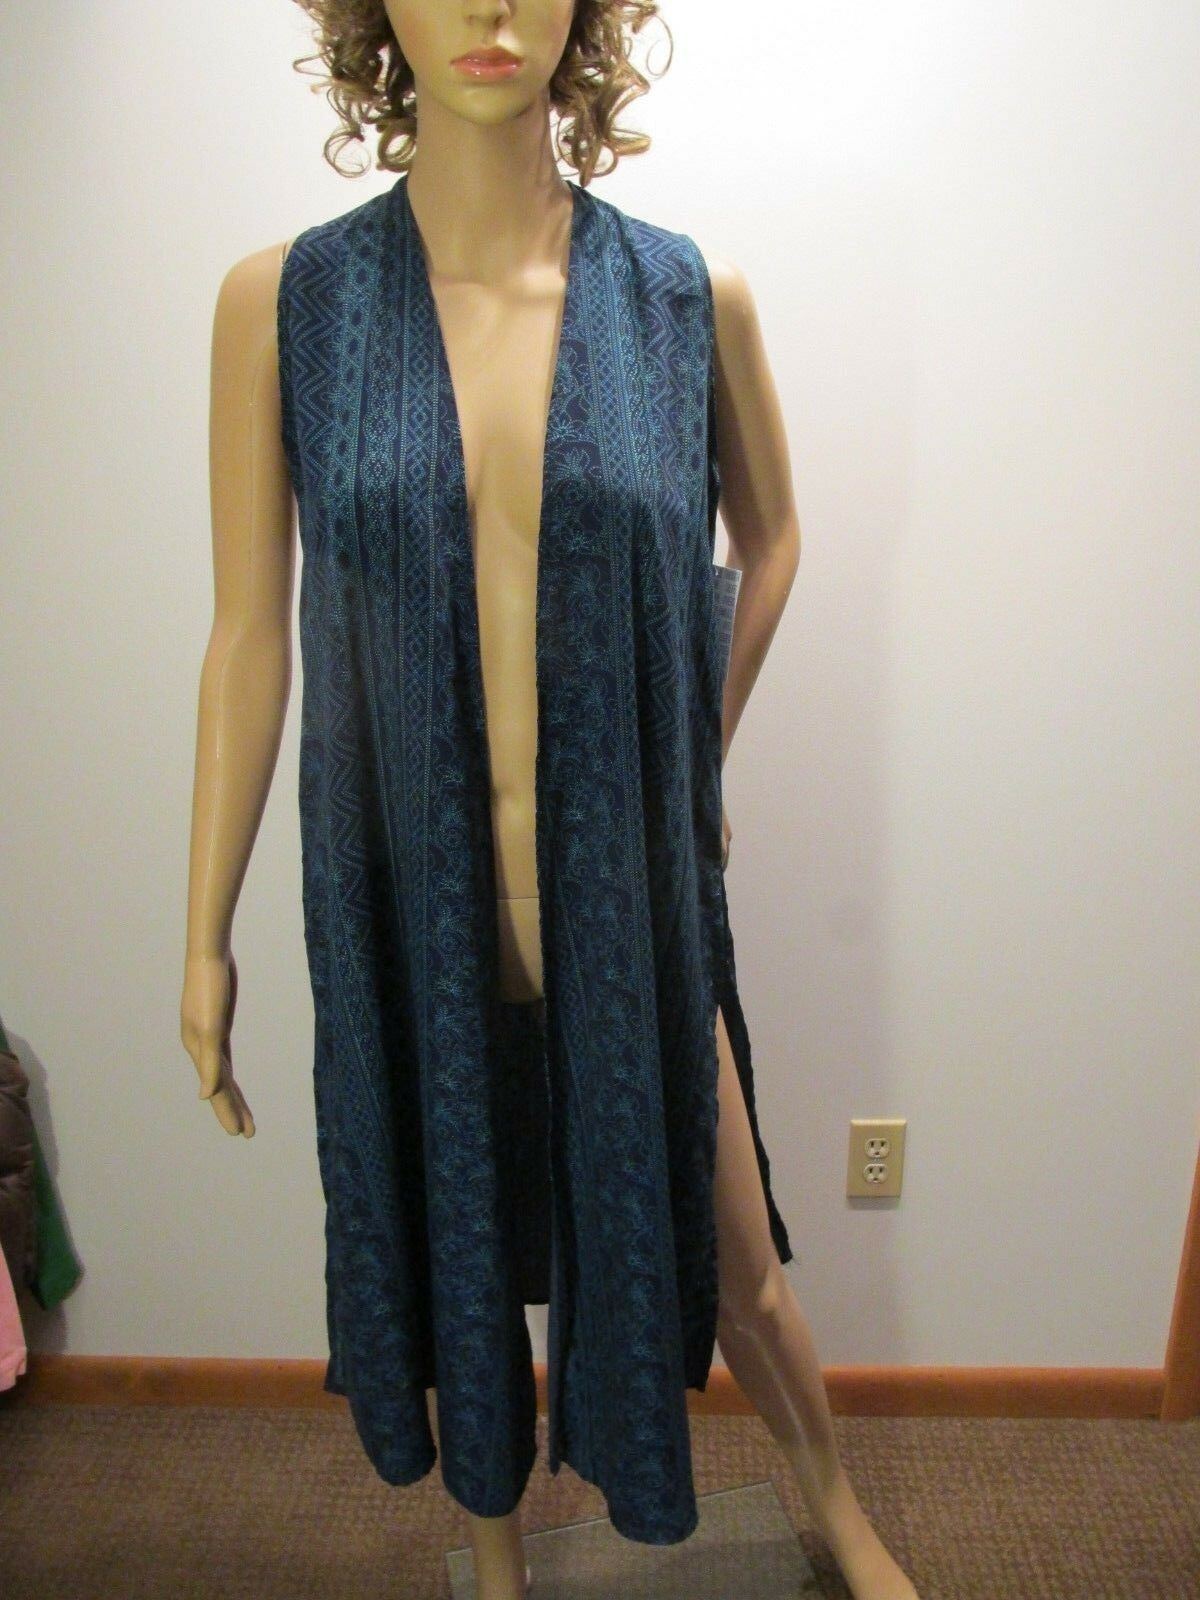 LULAROE JOY XSmall Mixed Geometric Floral Design Long bluee bluee bluee Vest Duster Tunic NWT 950295